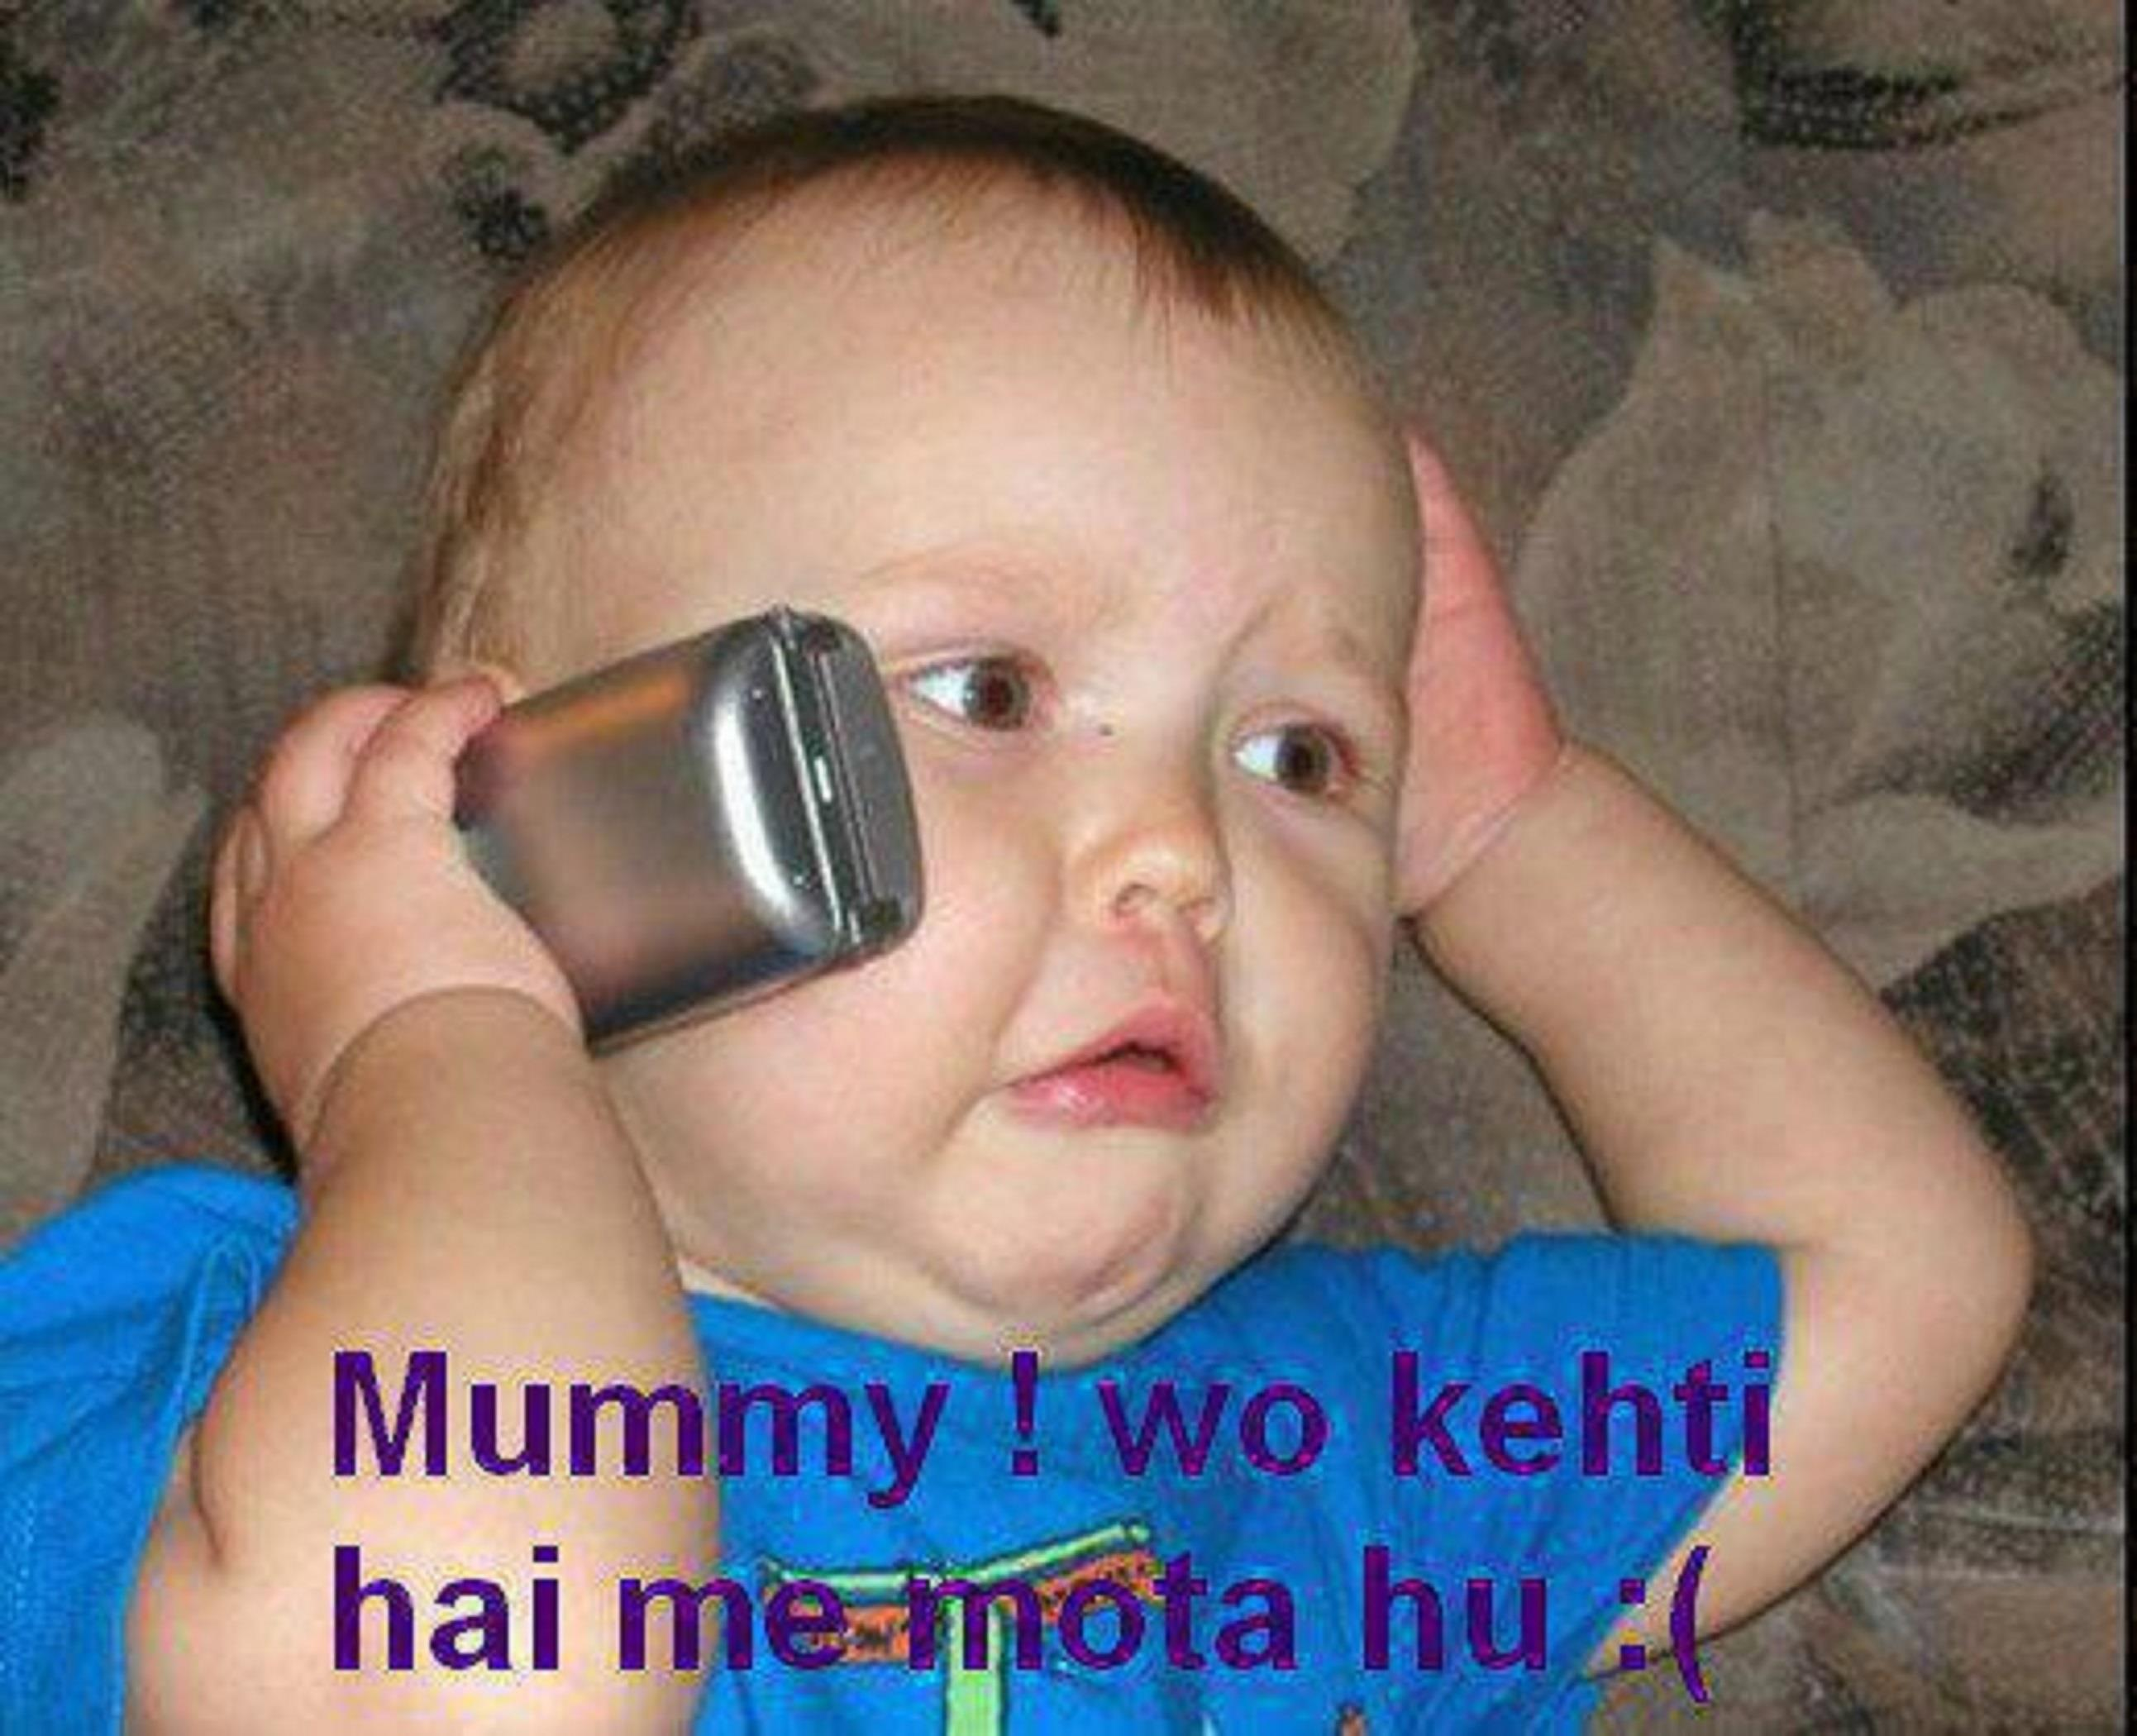 Funny baby pictures with quotes zoom voltagebd Choice Image